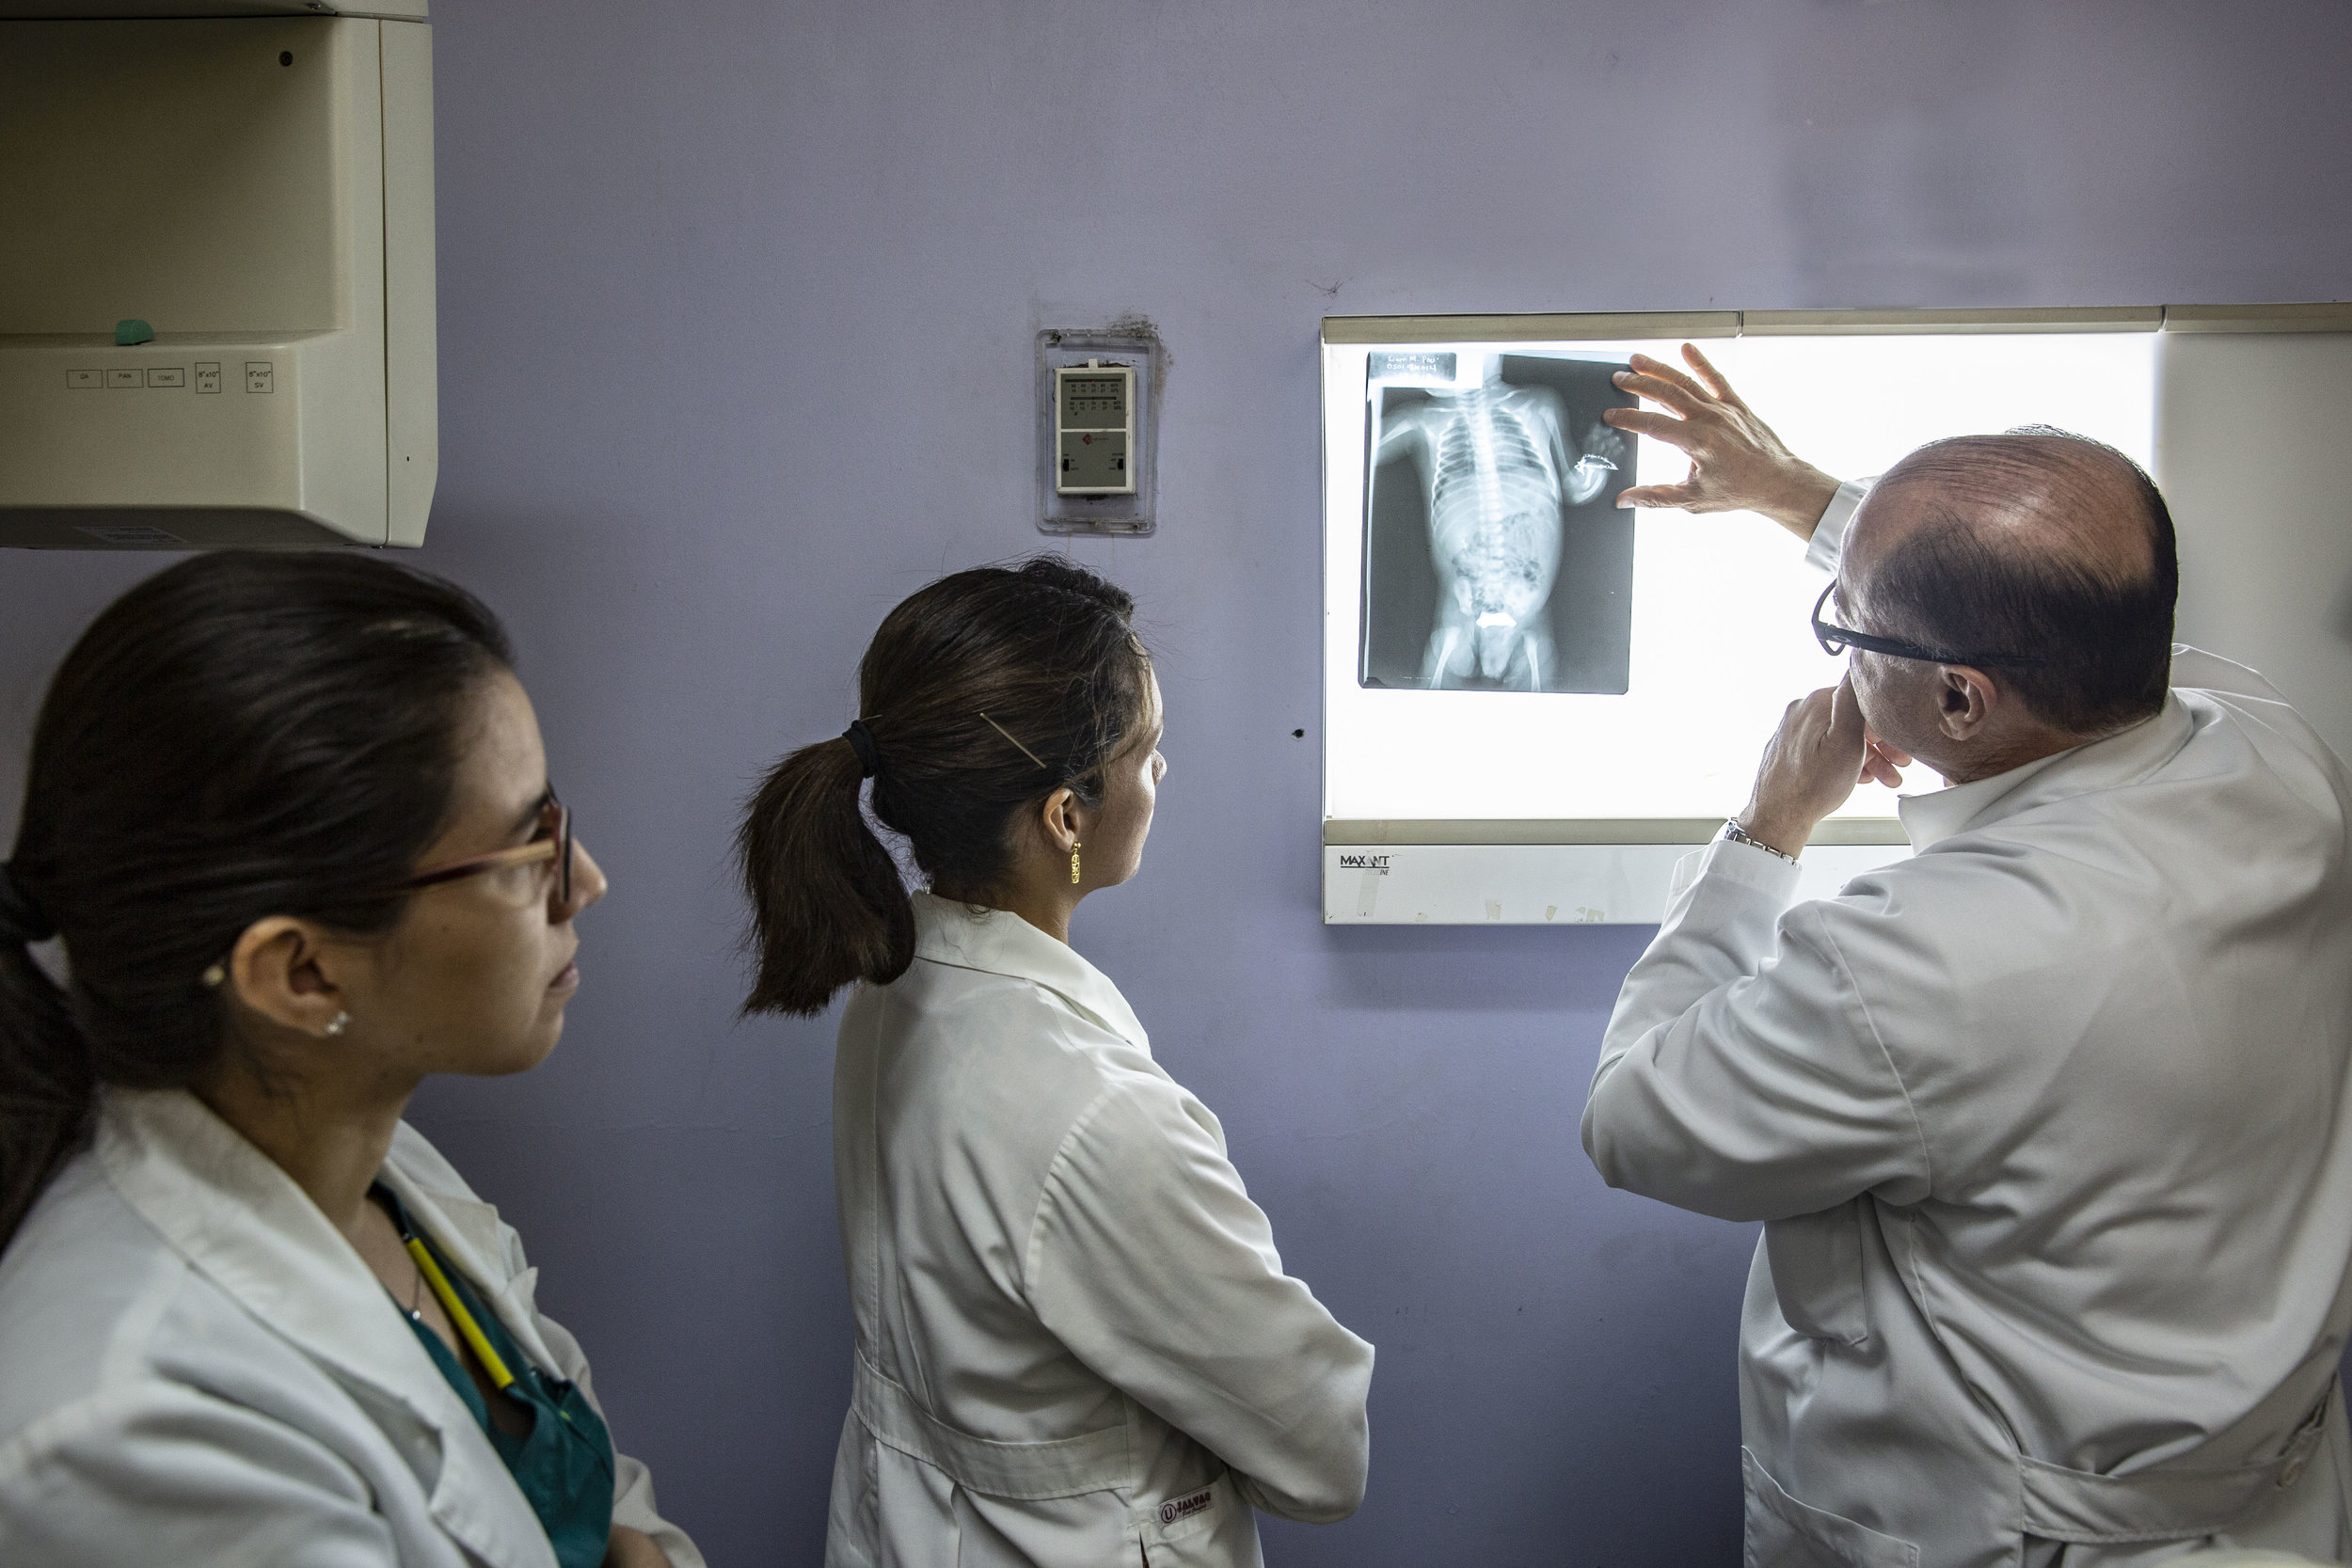 Doctor Craniotti, head of the Ruth Paz hospital in San Pedro Sula and pedriatic surgeon specialized in anorectal disfunctions works alongisde his assistans.